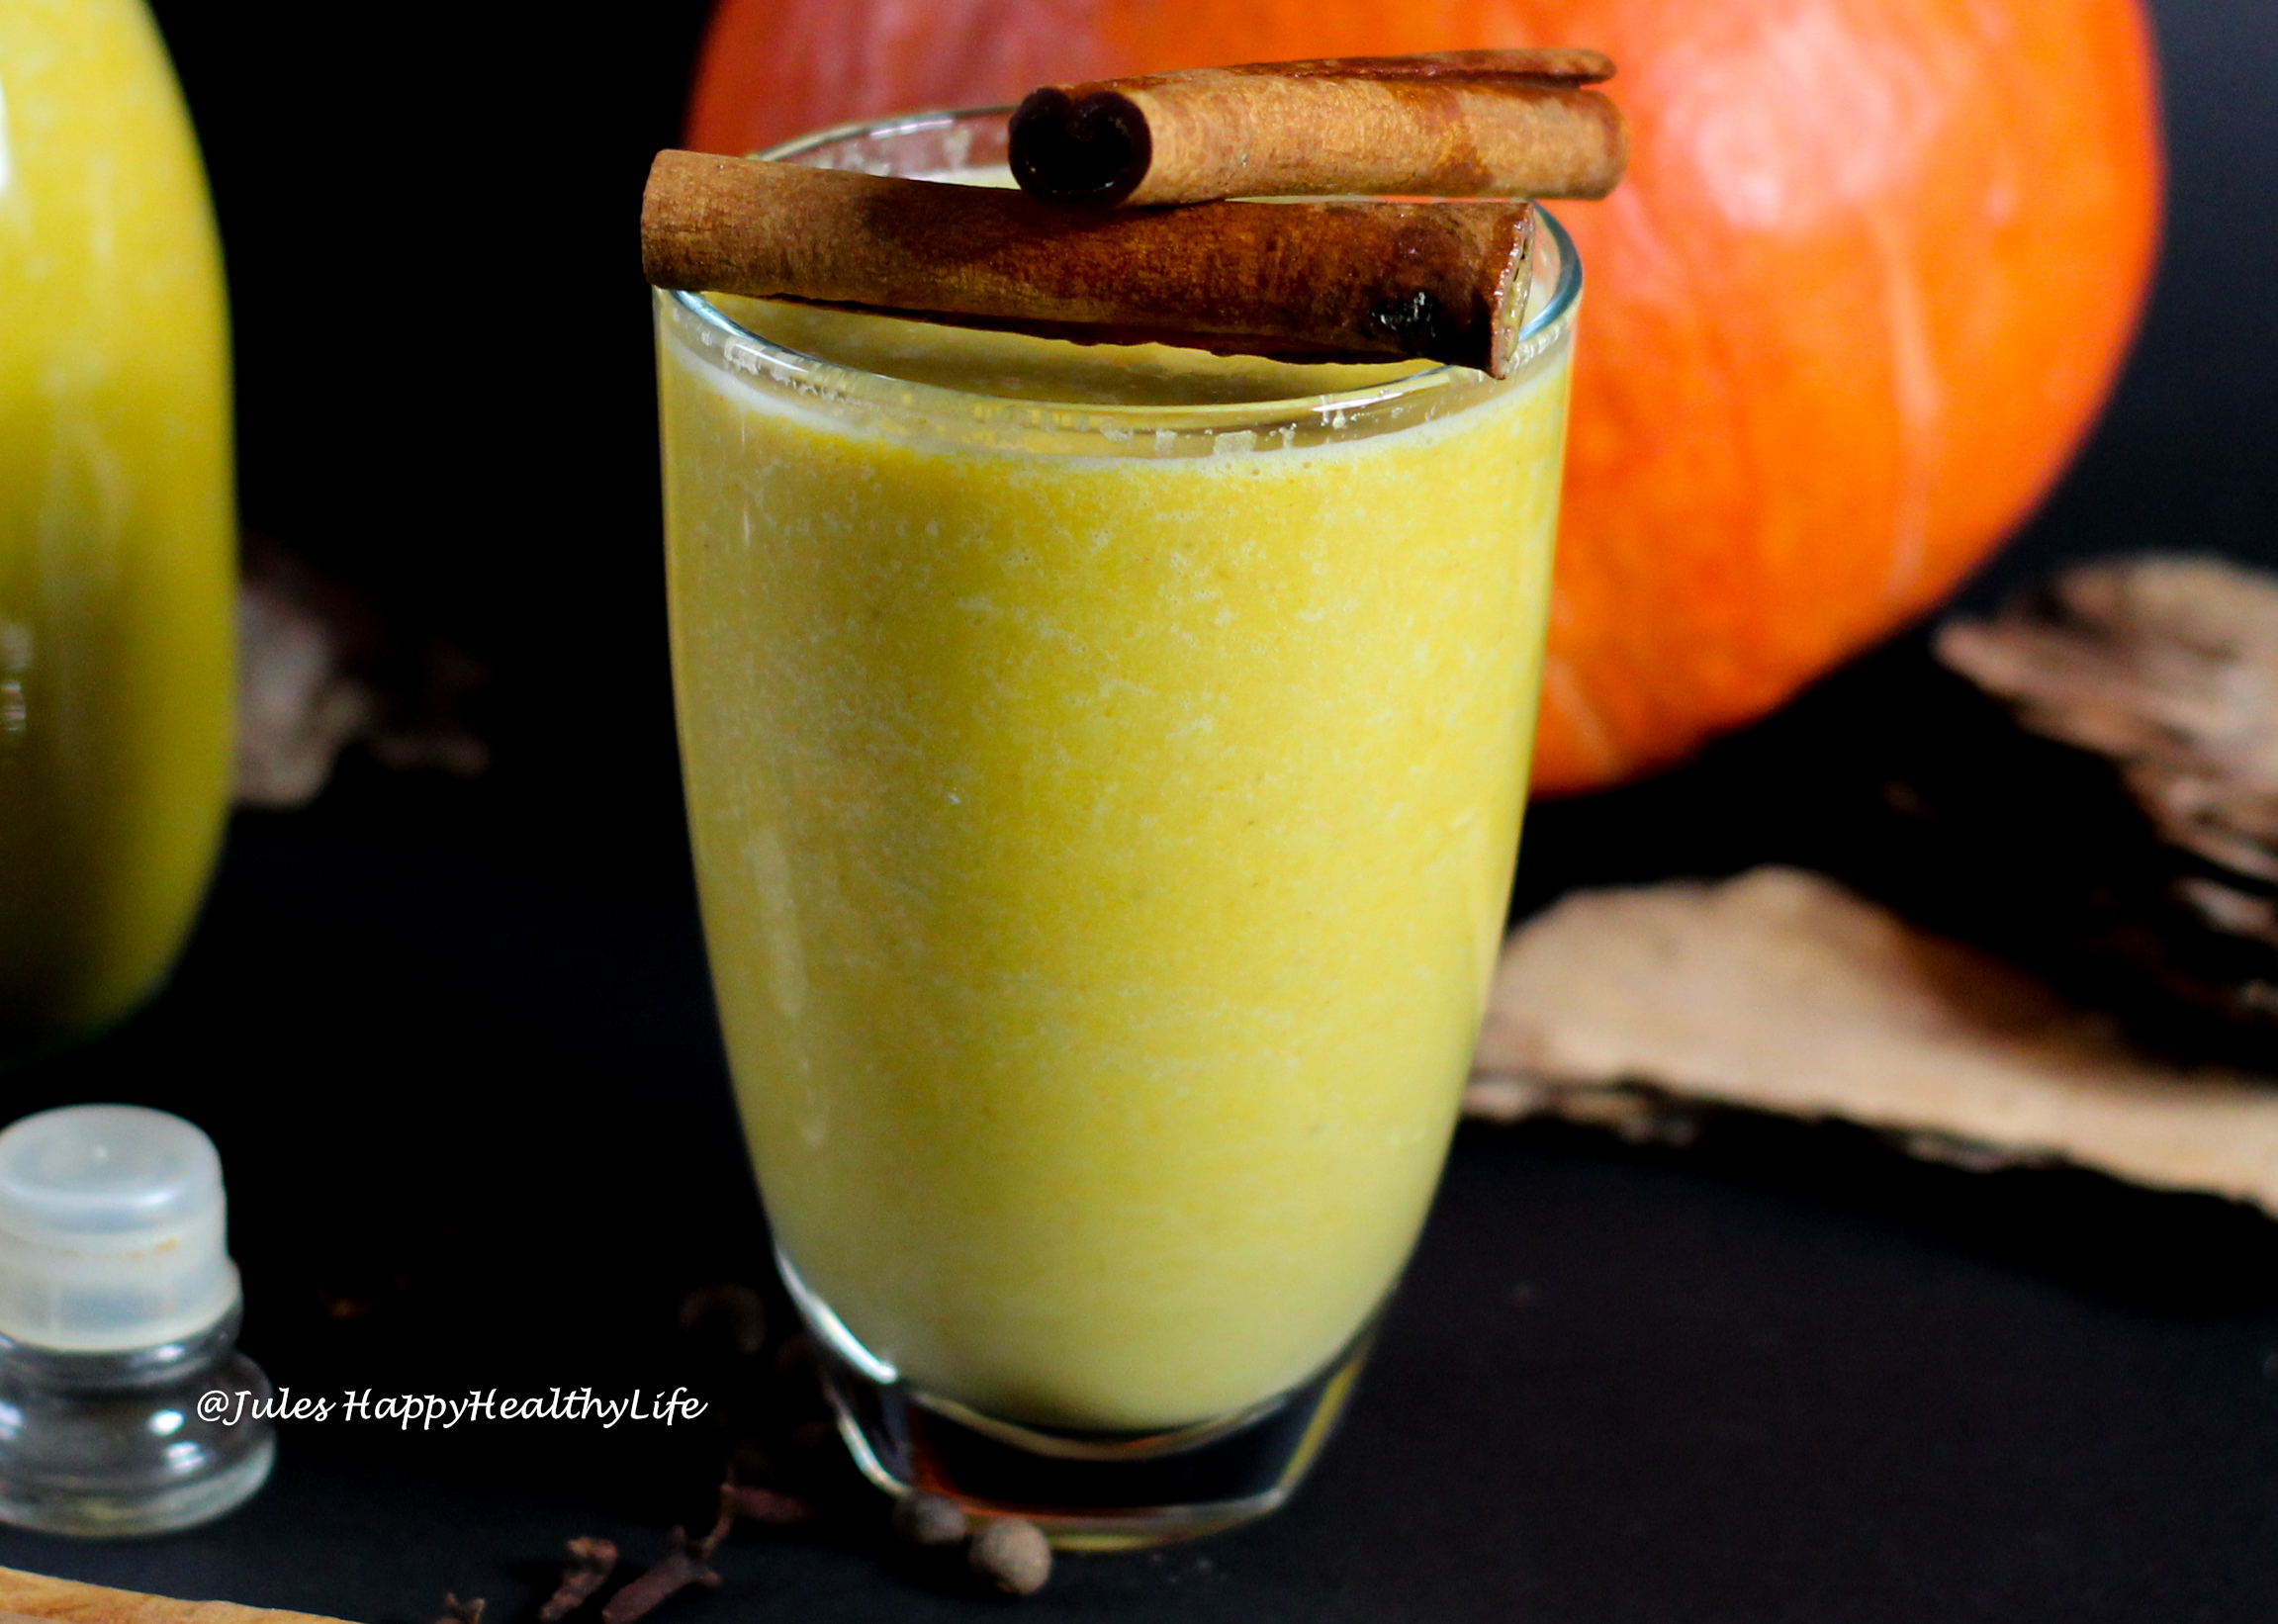 Perfect for fall or winter - Homemade Pumpkin Almond Milk with Pumpkin Spice